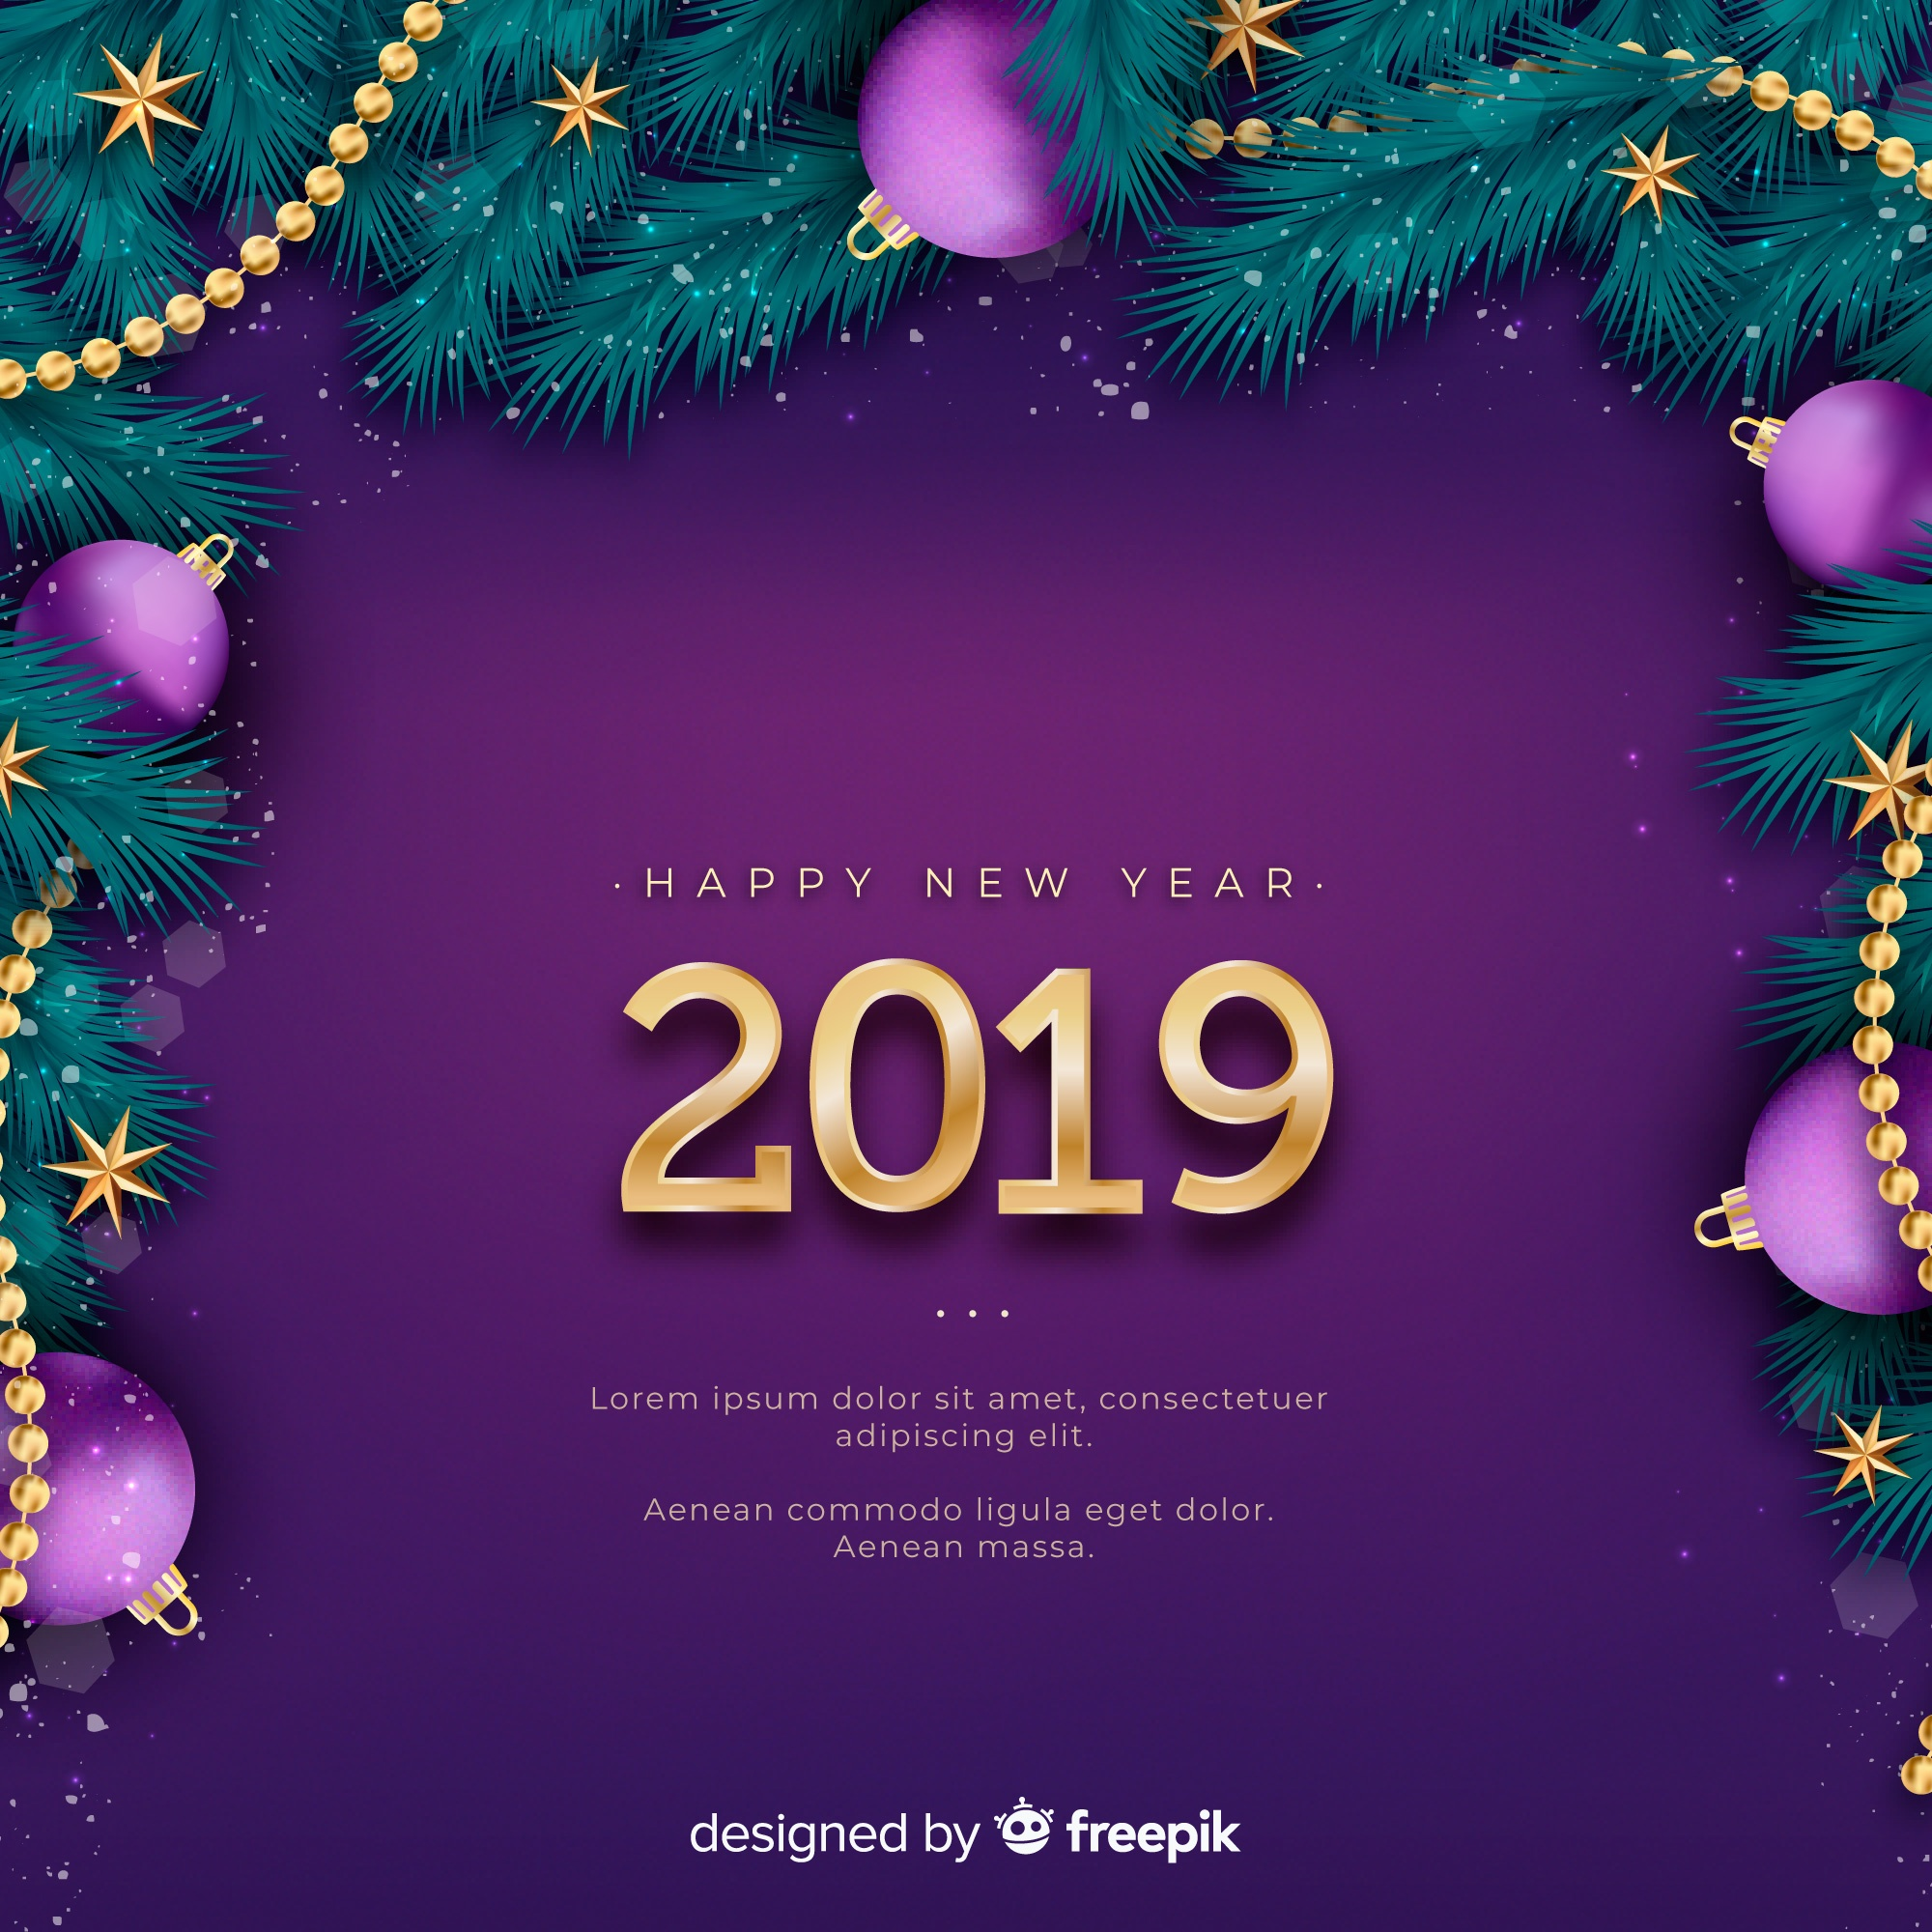 Realistic new year 2019 background